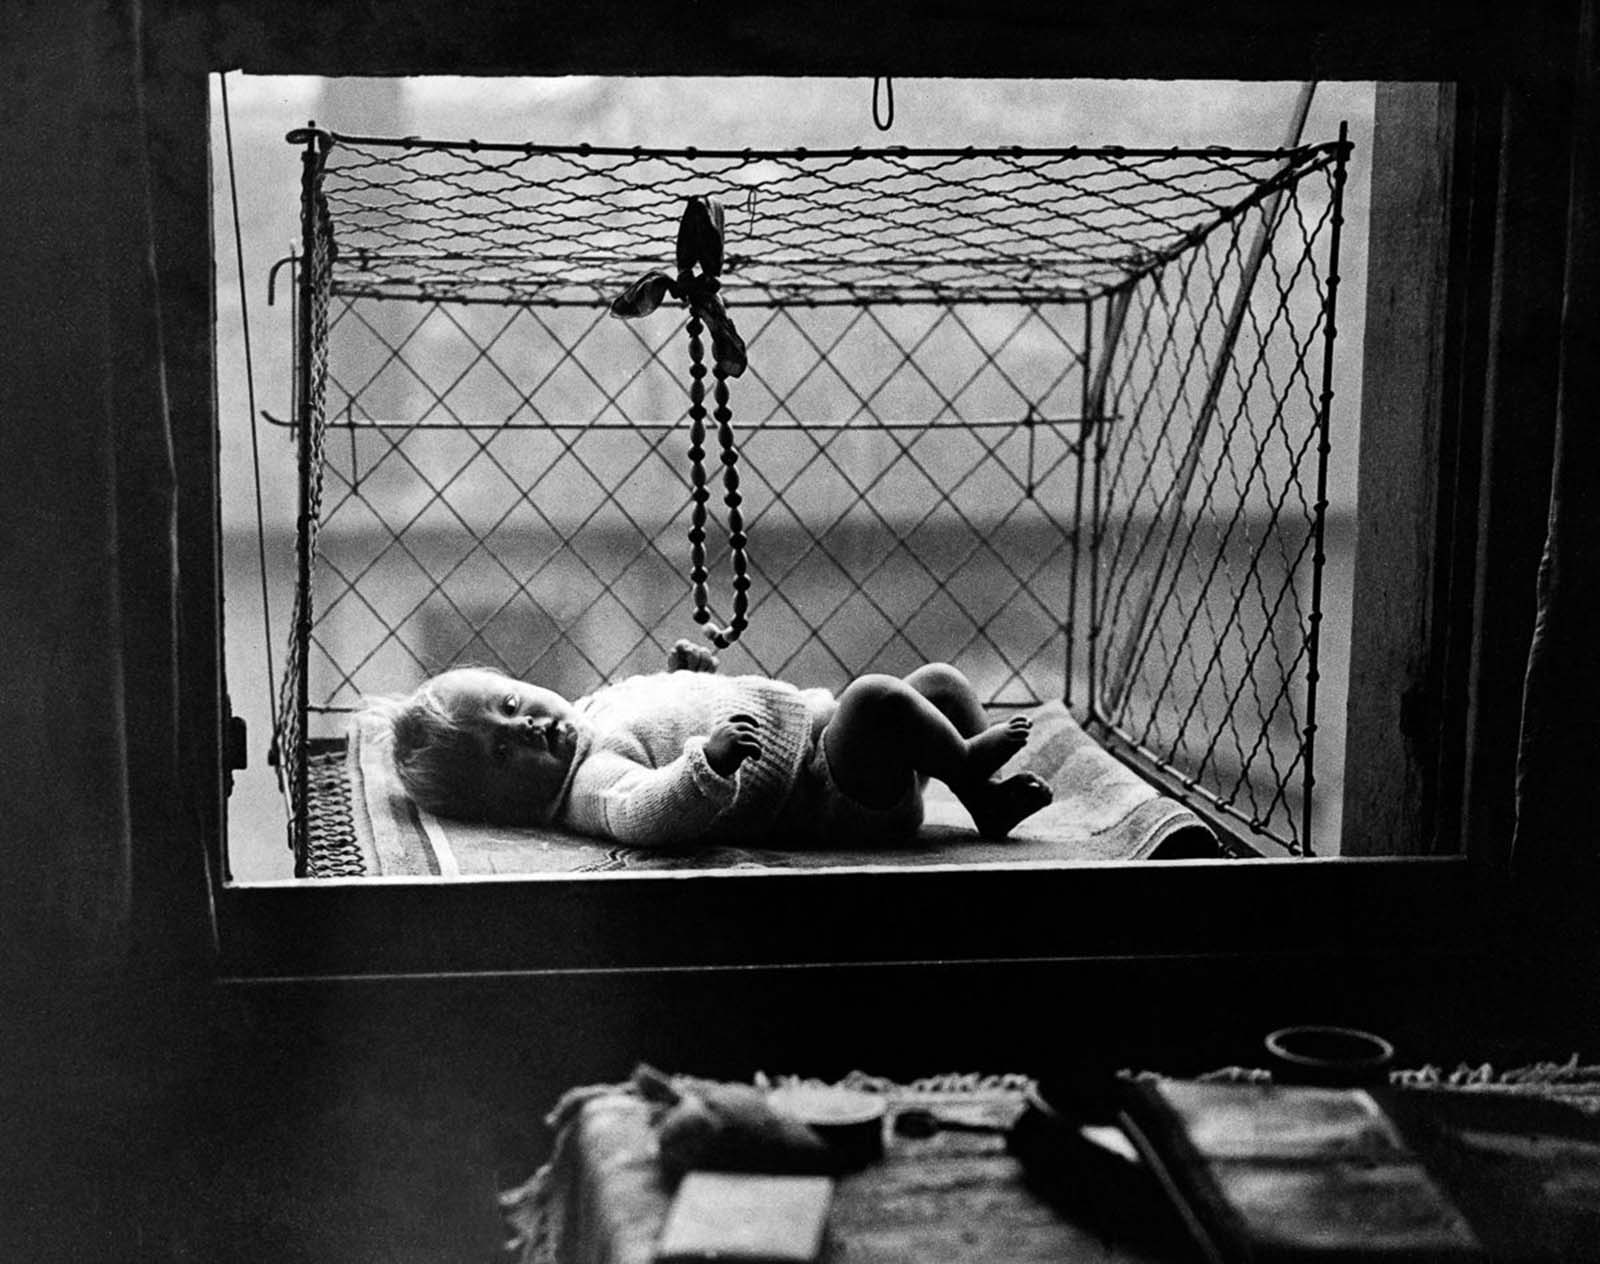 The cages became popular among apartment dwellers without access to backyards.